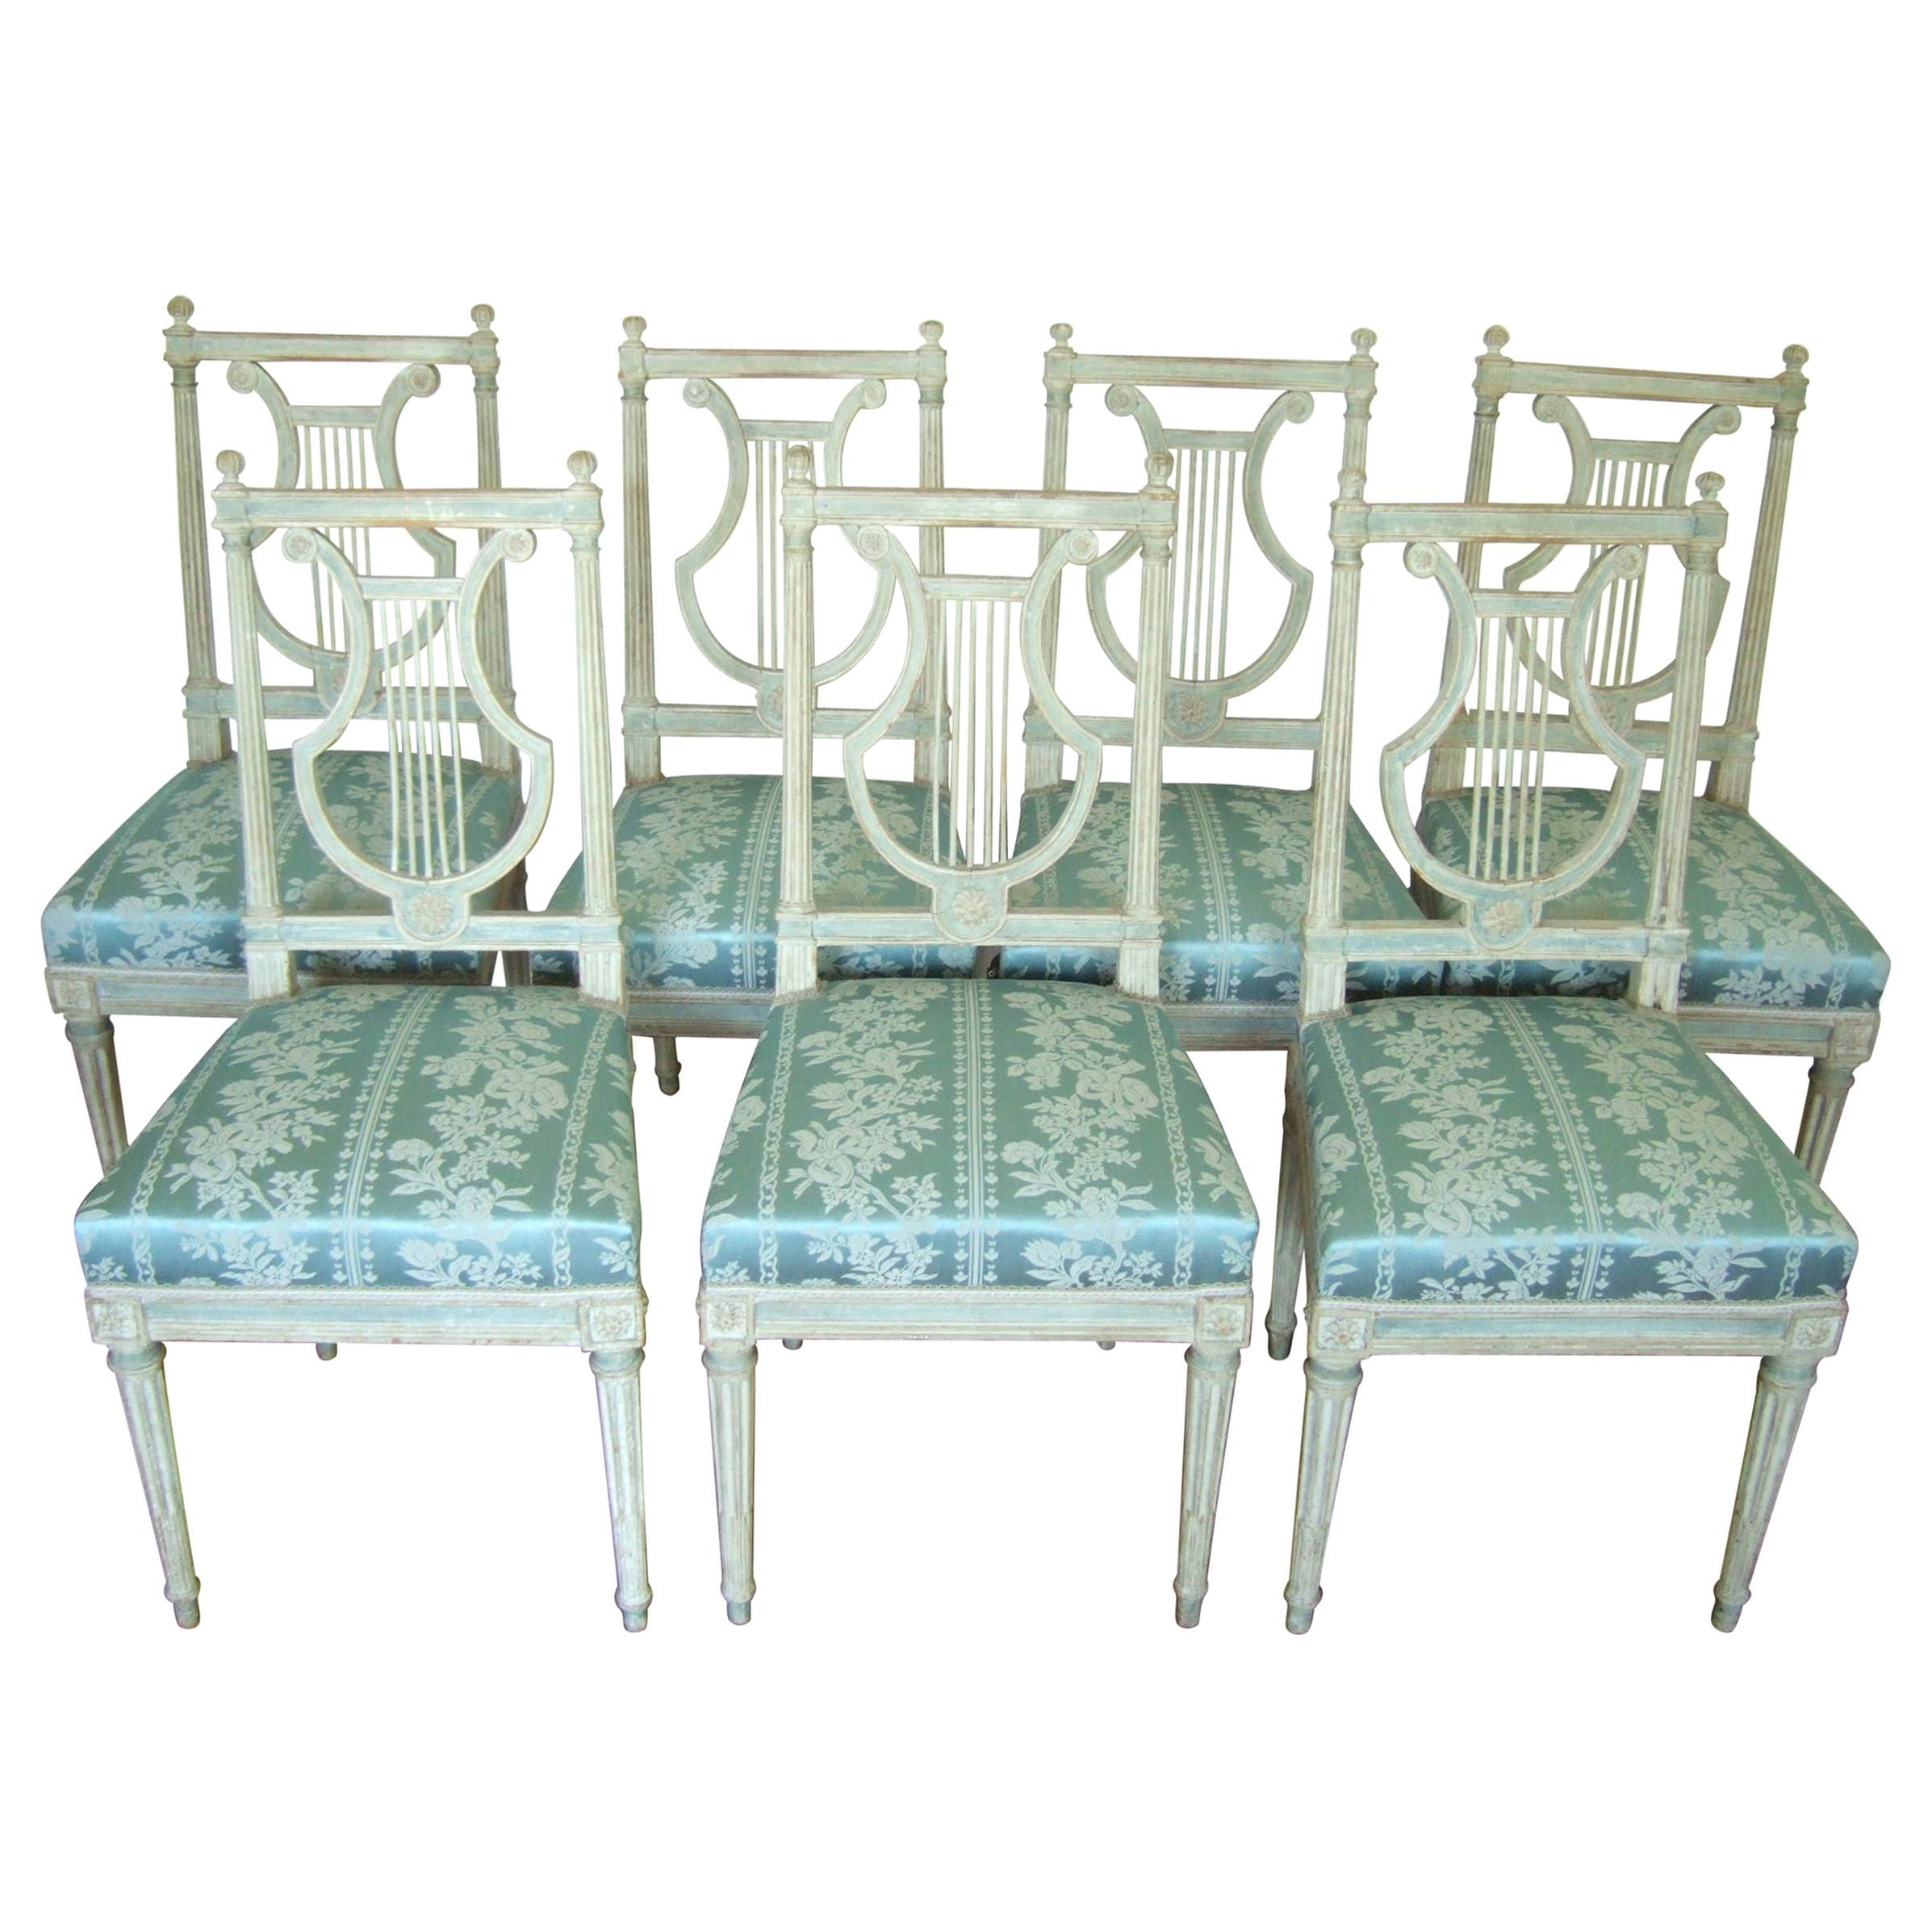 Set of Original Jacob Model Chairs Lyre of Louis XVI, Late 18th Century France